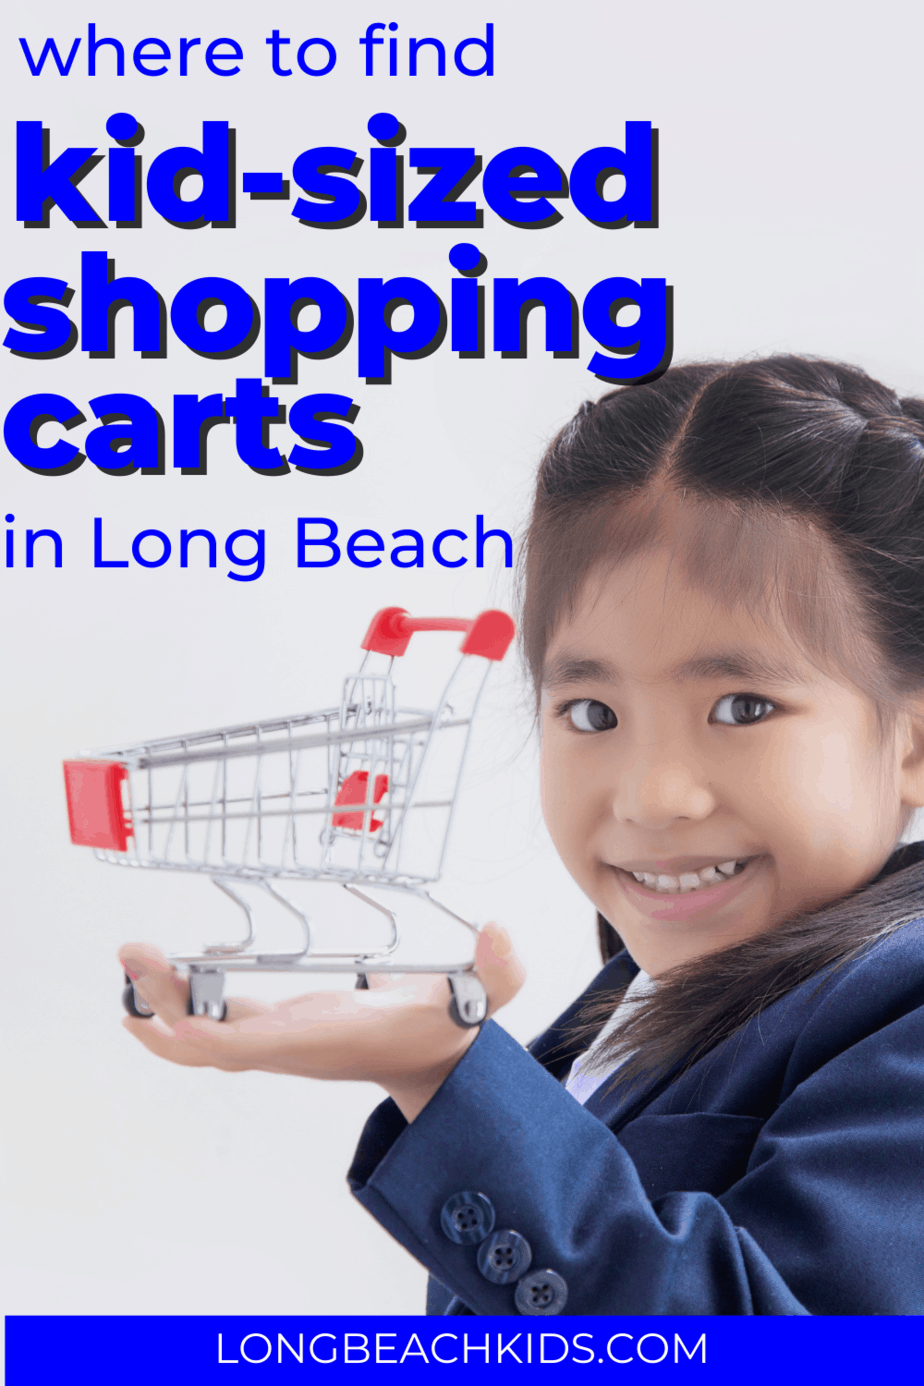 little girl holding small shopping cart; text: where to find kid-sized shopping carts in long beach